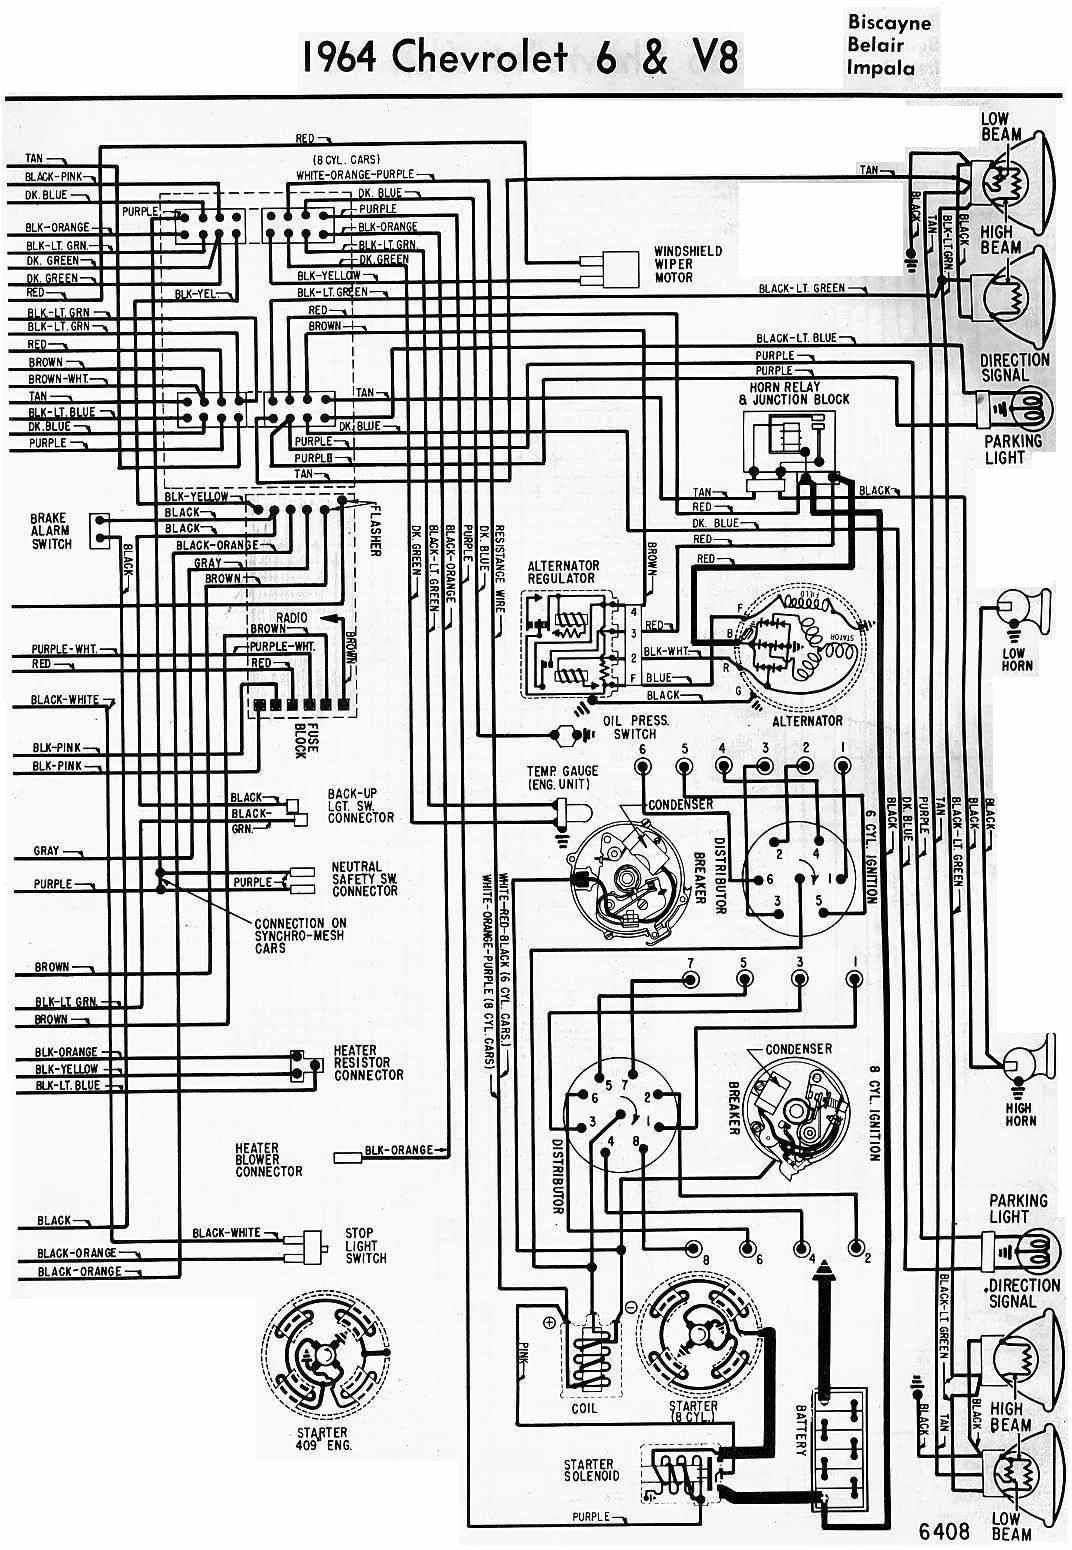 chevy impala wiring horn diagram wiring diagram database 1963 chevy impala horn wiring [ 1072 x 1550 Pixel ]